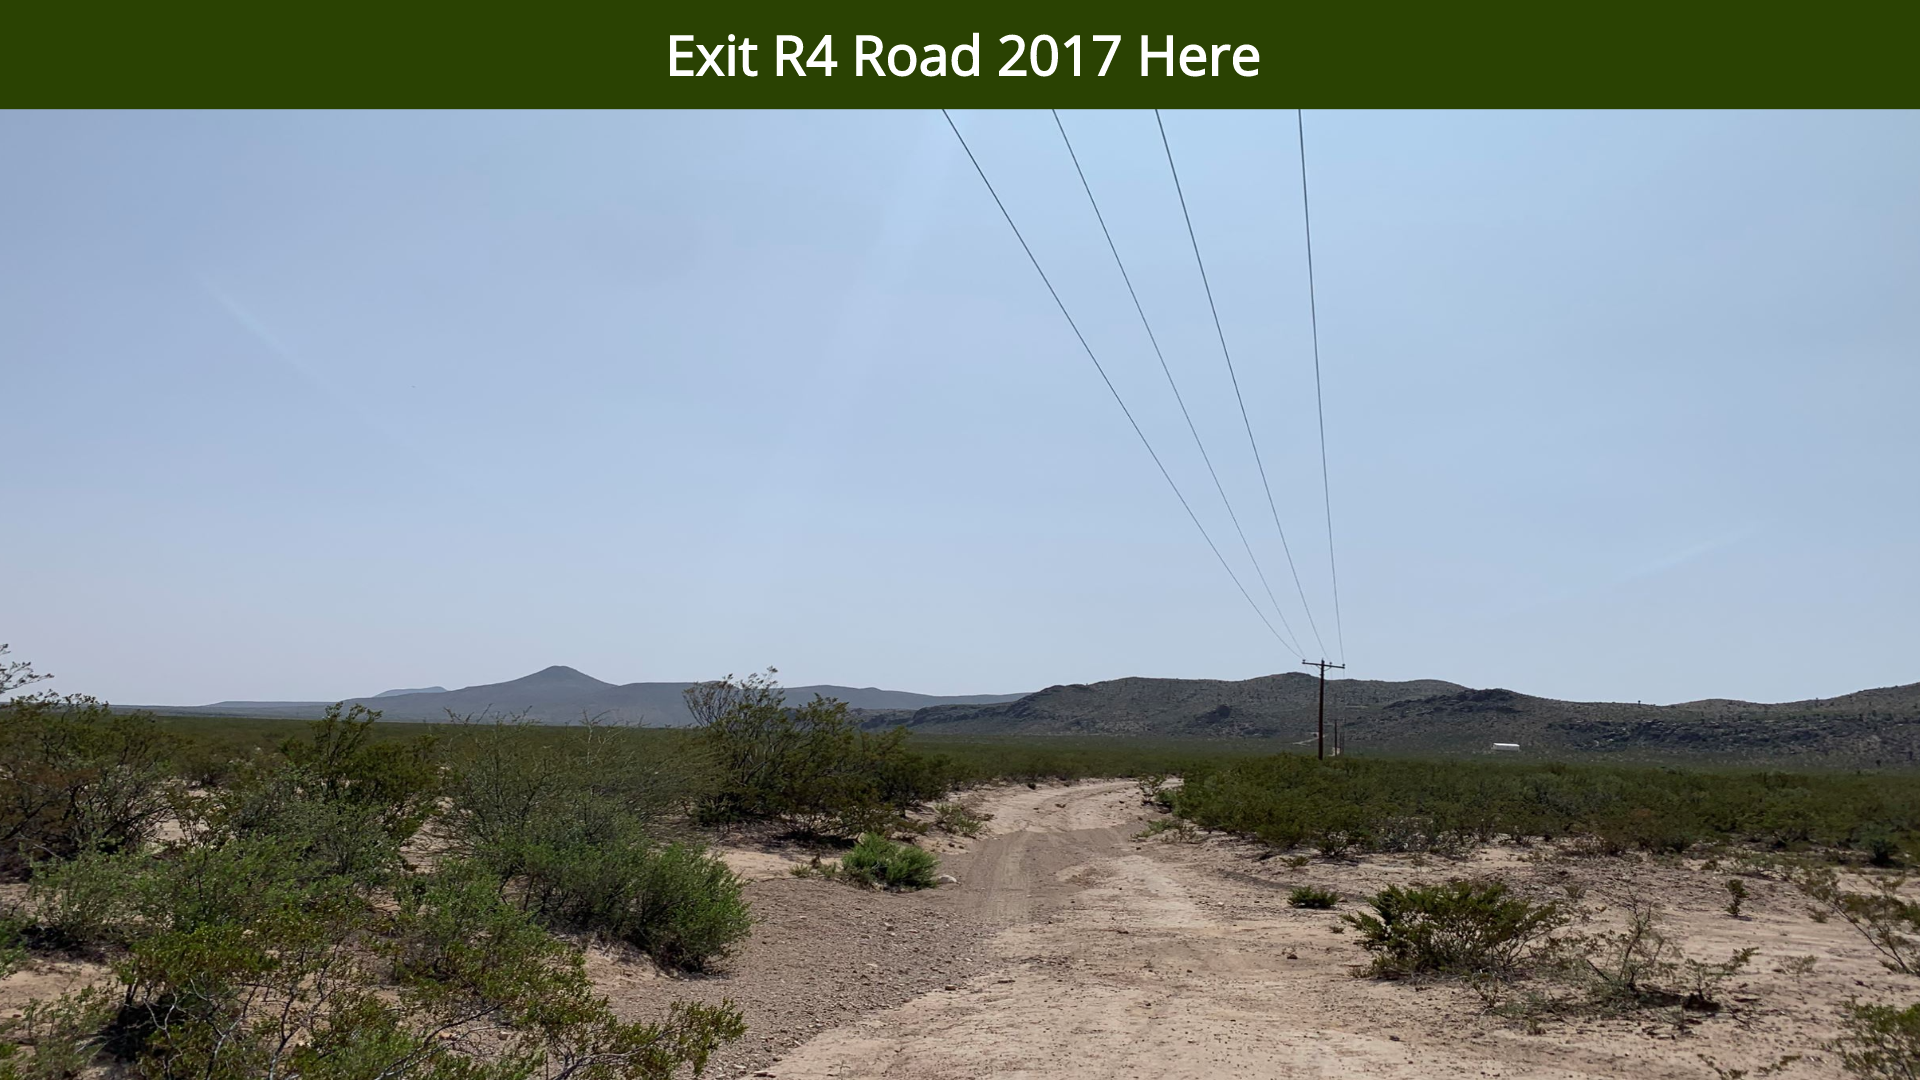 Exit R4 Road 2017 Here